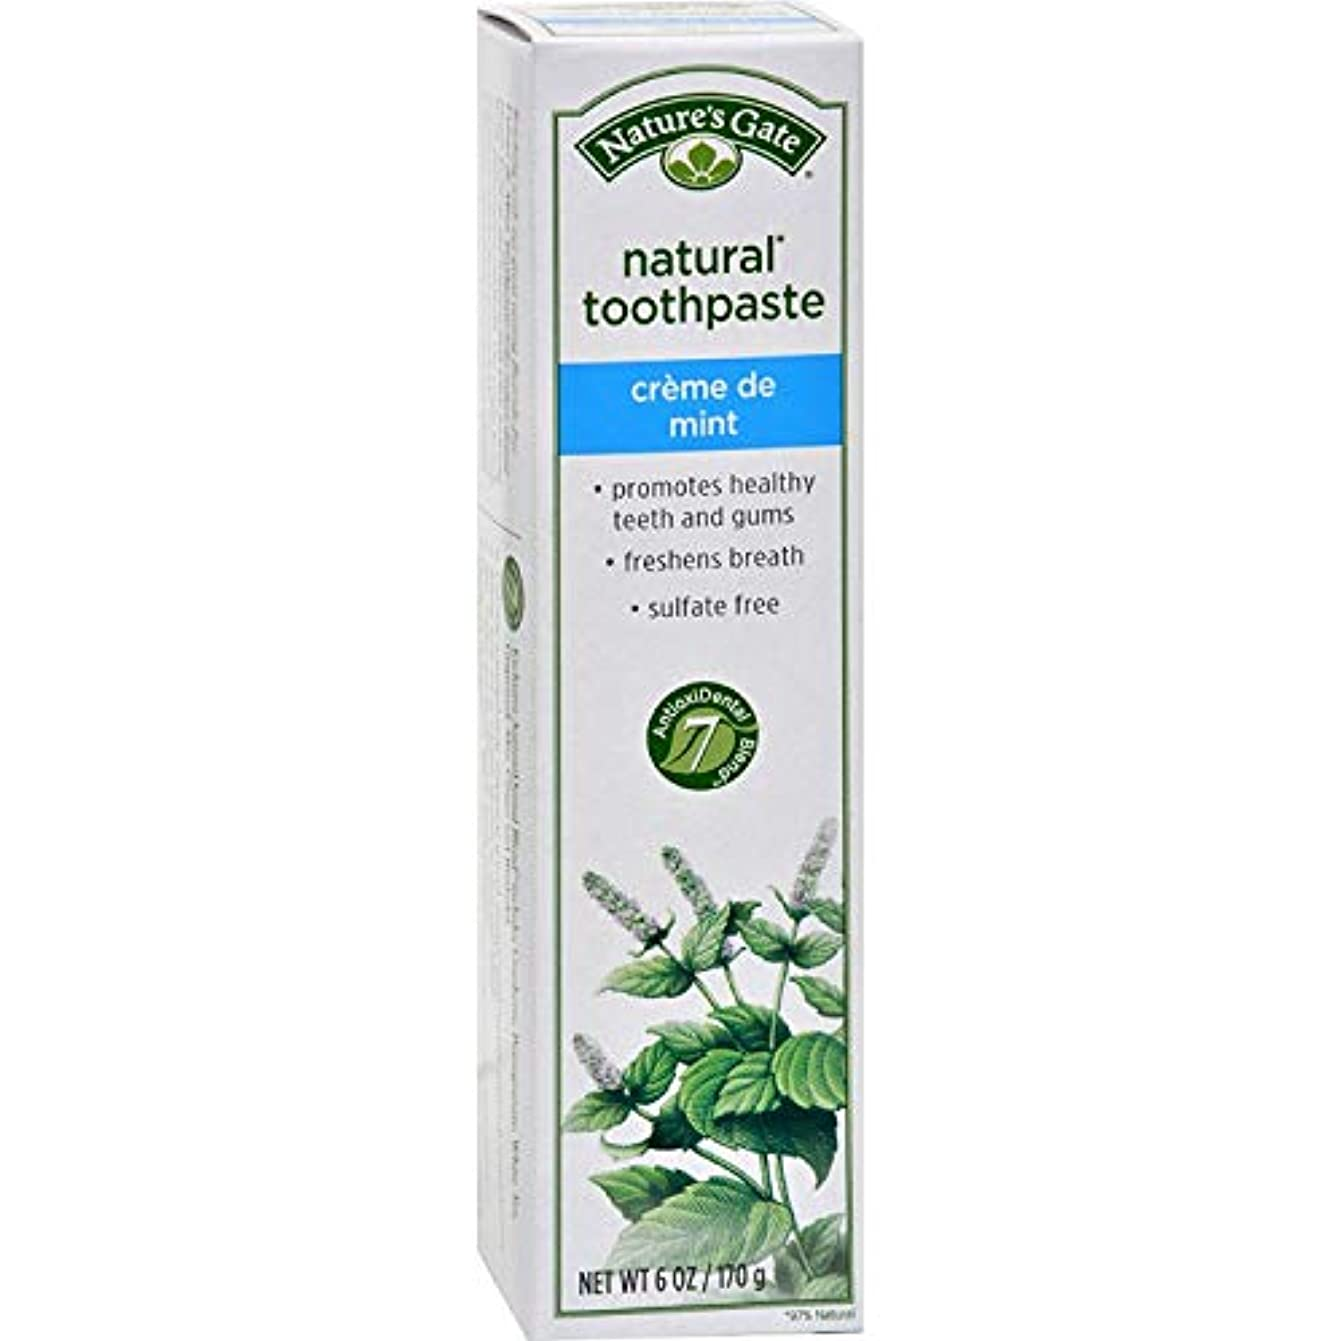 ほうき感覚弱めるNature's Gate, Natural Toothpaste, Creme de Mint, 6 oz (170 g)